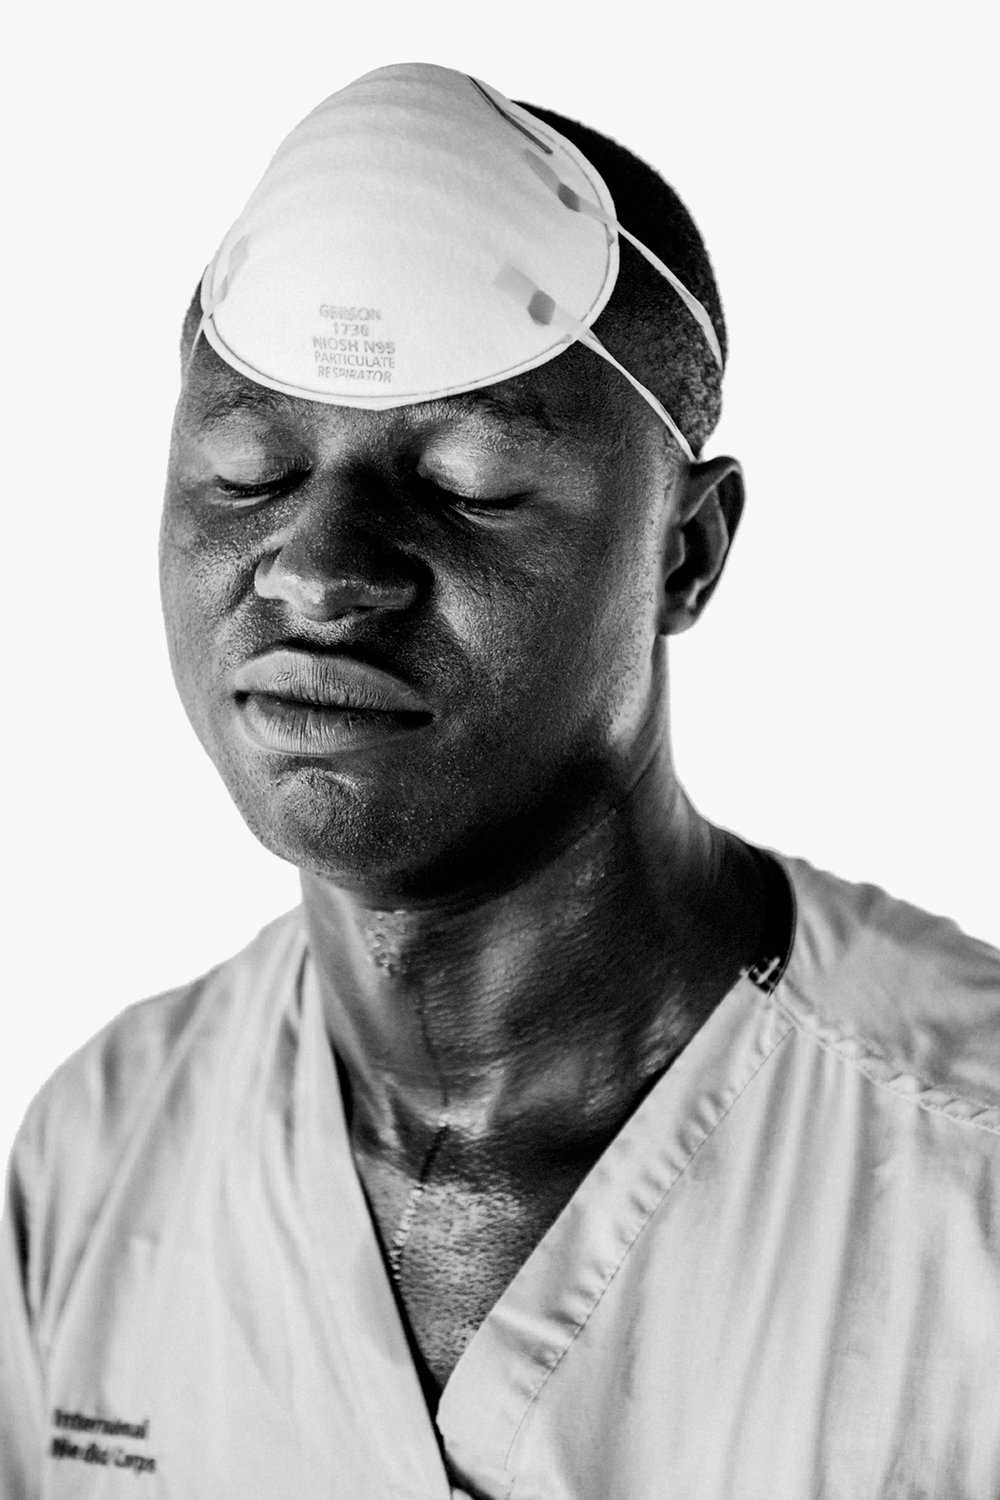 The Ebola crisis that hit West Africa in 2014 has been reported on all over the world, with images of death, sick people and others in hazmat suits.  This gallery is a collection of portraits of the people working out of an Ebola treatment facility five hours away from Monrovia, Liberia, aiming at showing the faces behind the daily fight that represented the Ebola crisis.  Read more at the  New York Times .